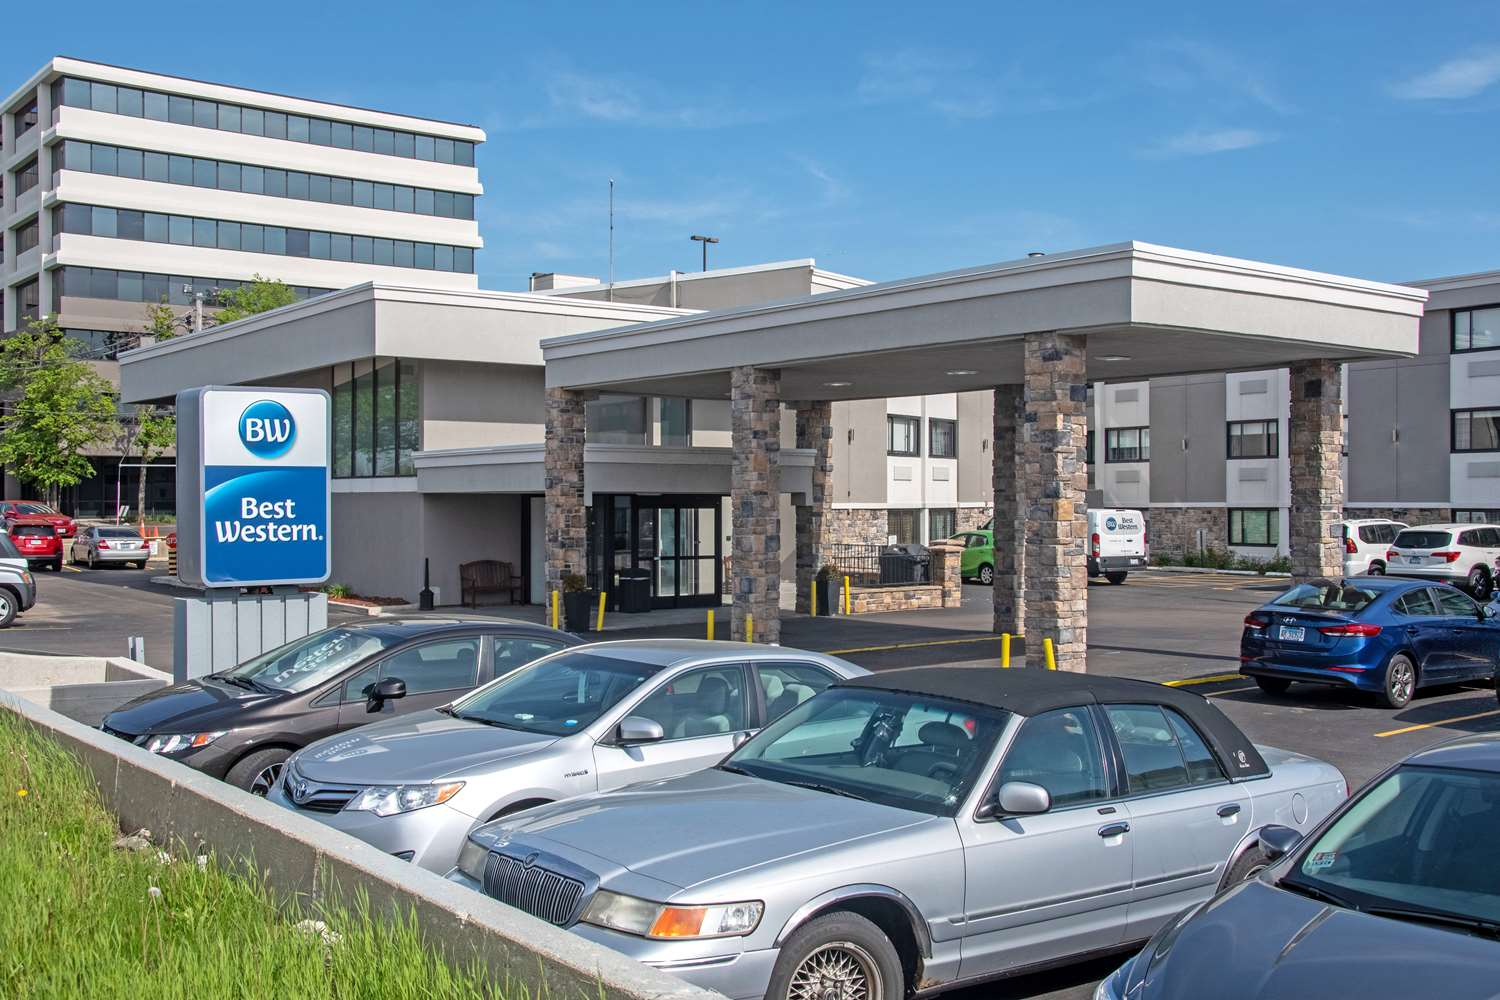 Rosemont Hotels Best Western At O Hare International Airport Hotel